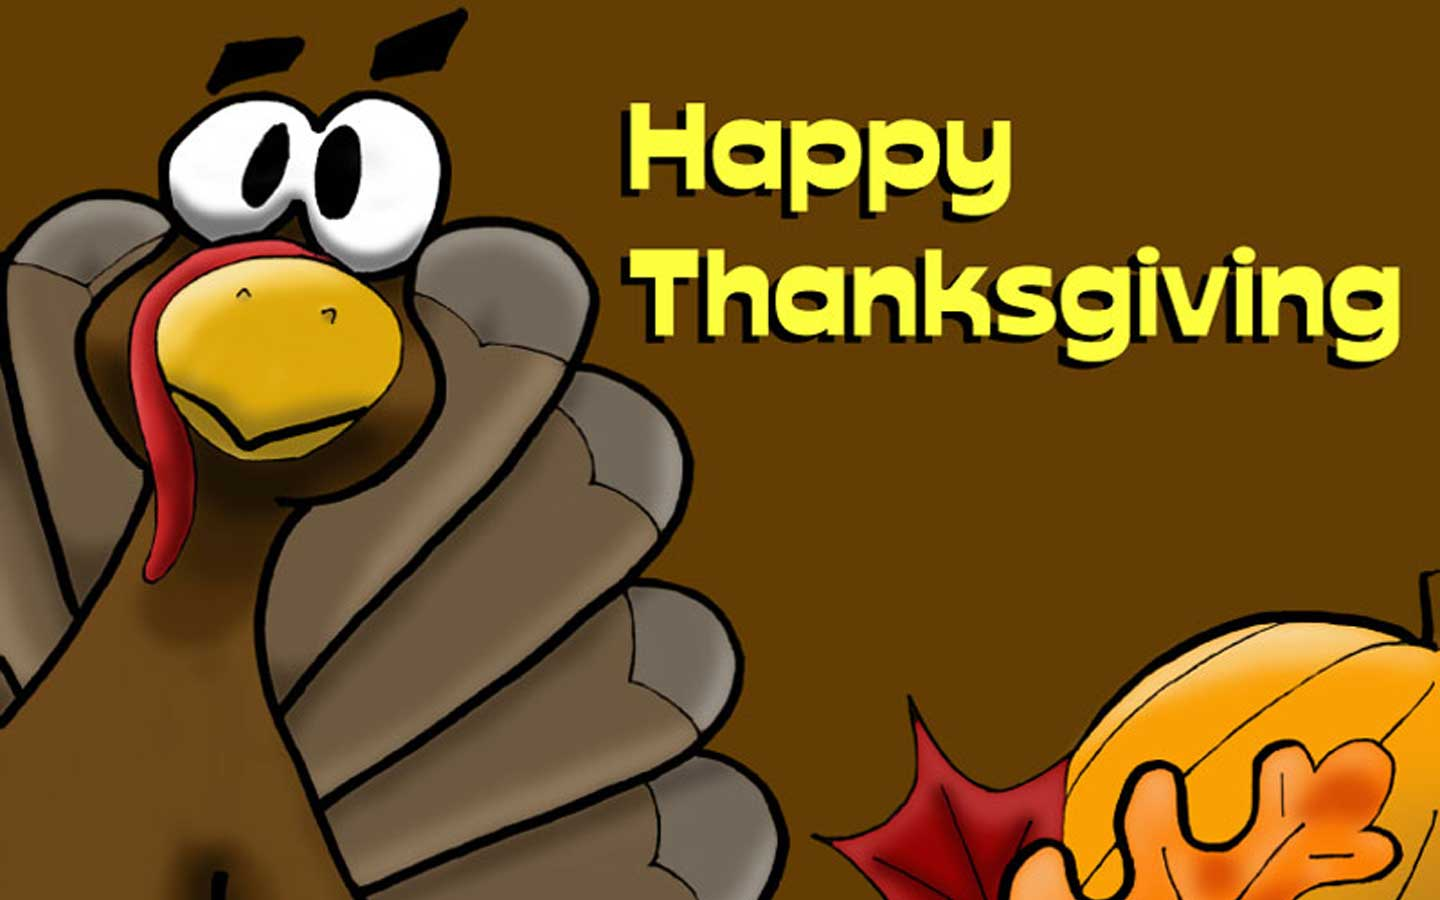 Hd Free Wallpapers For Desktop Funny Thanksgiving